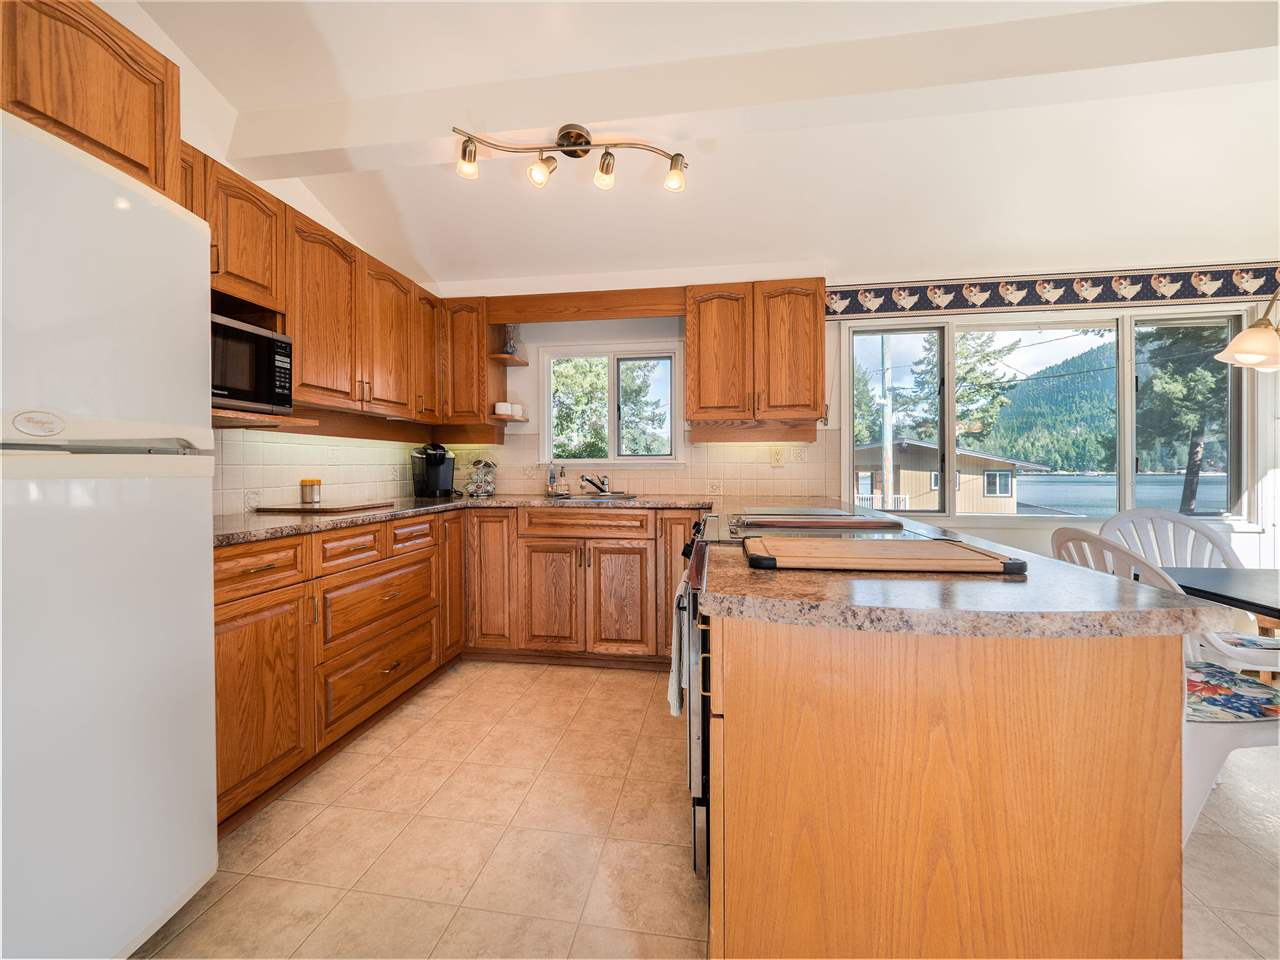 11 4995 GONZALES ROAD - Pender Harbour Egmont House/Single Family for sale, 2 Bedrooms (R2447947) - #9